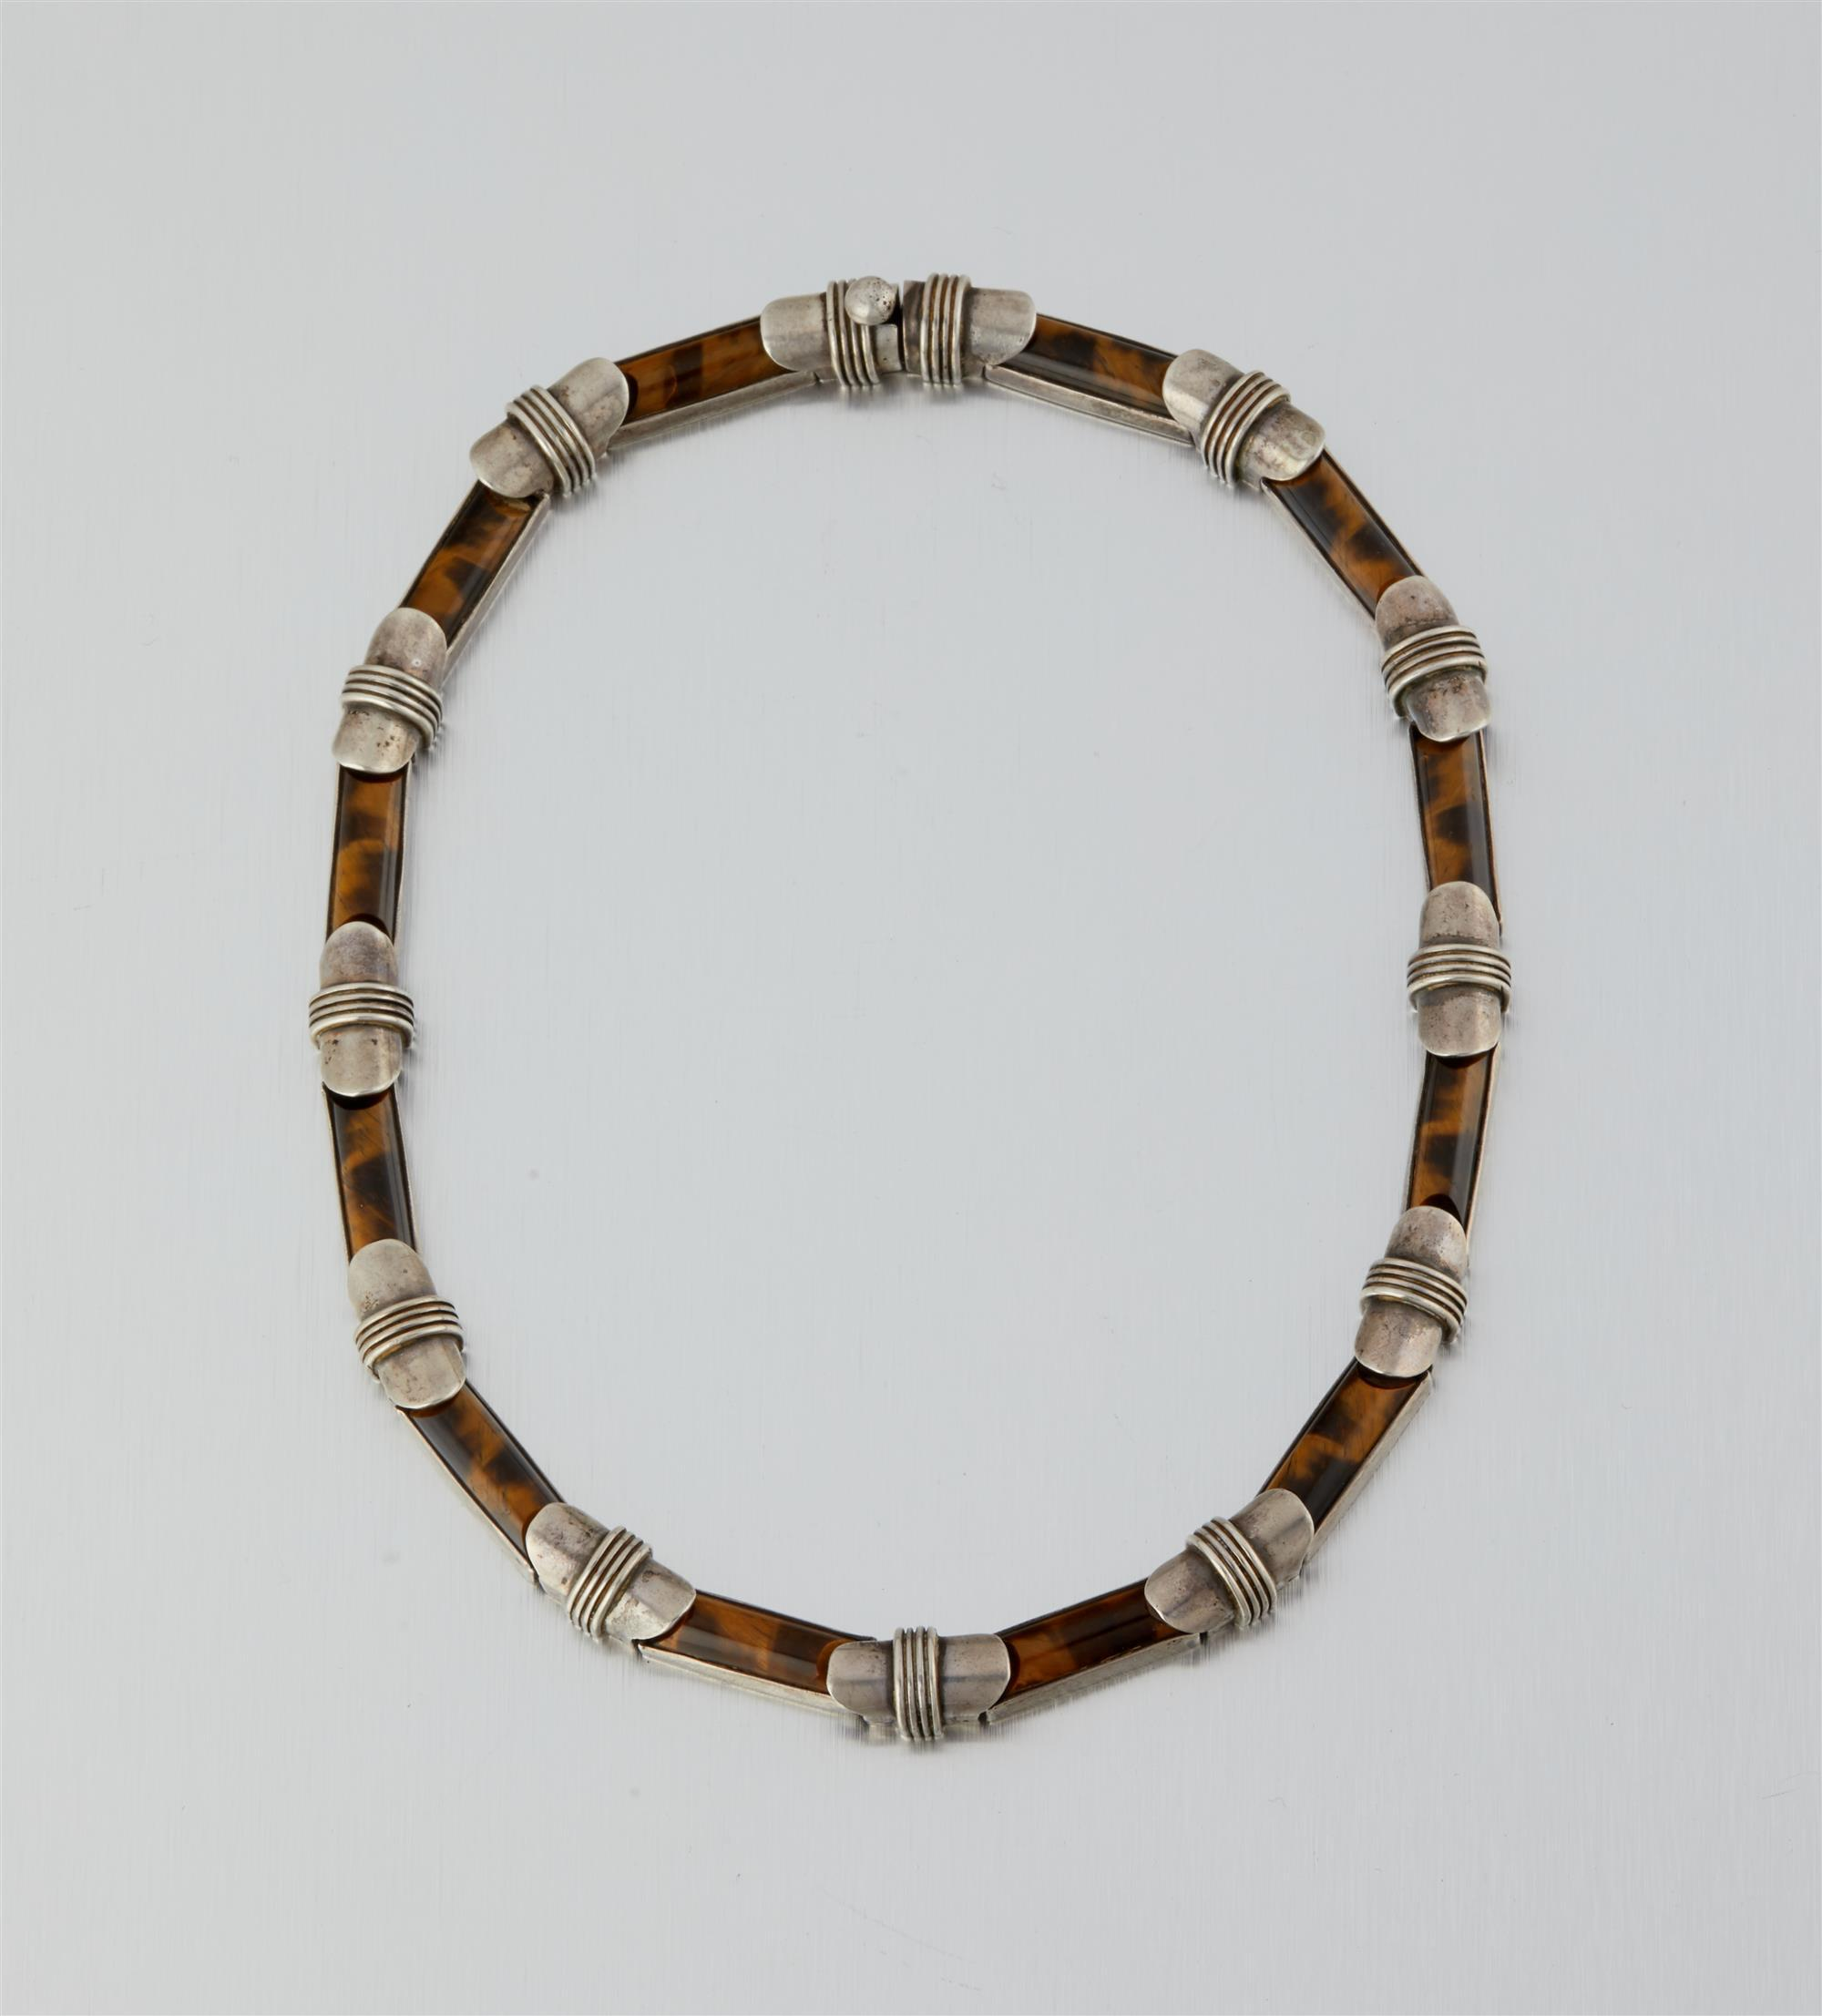 An Antonio Pineda silver and tiger's eye necklace